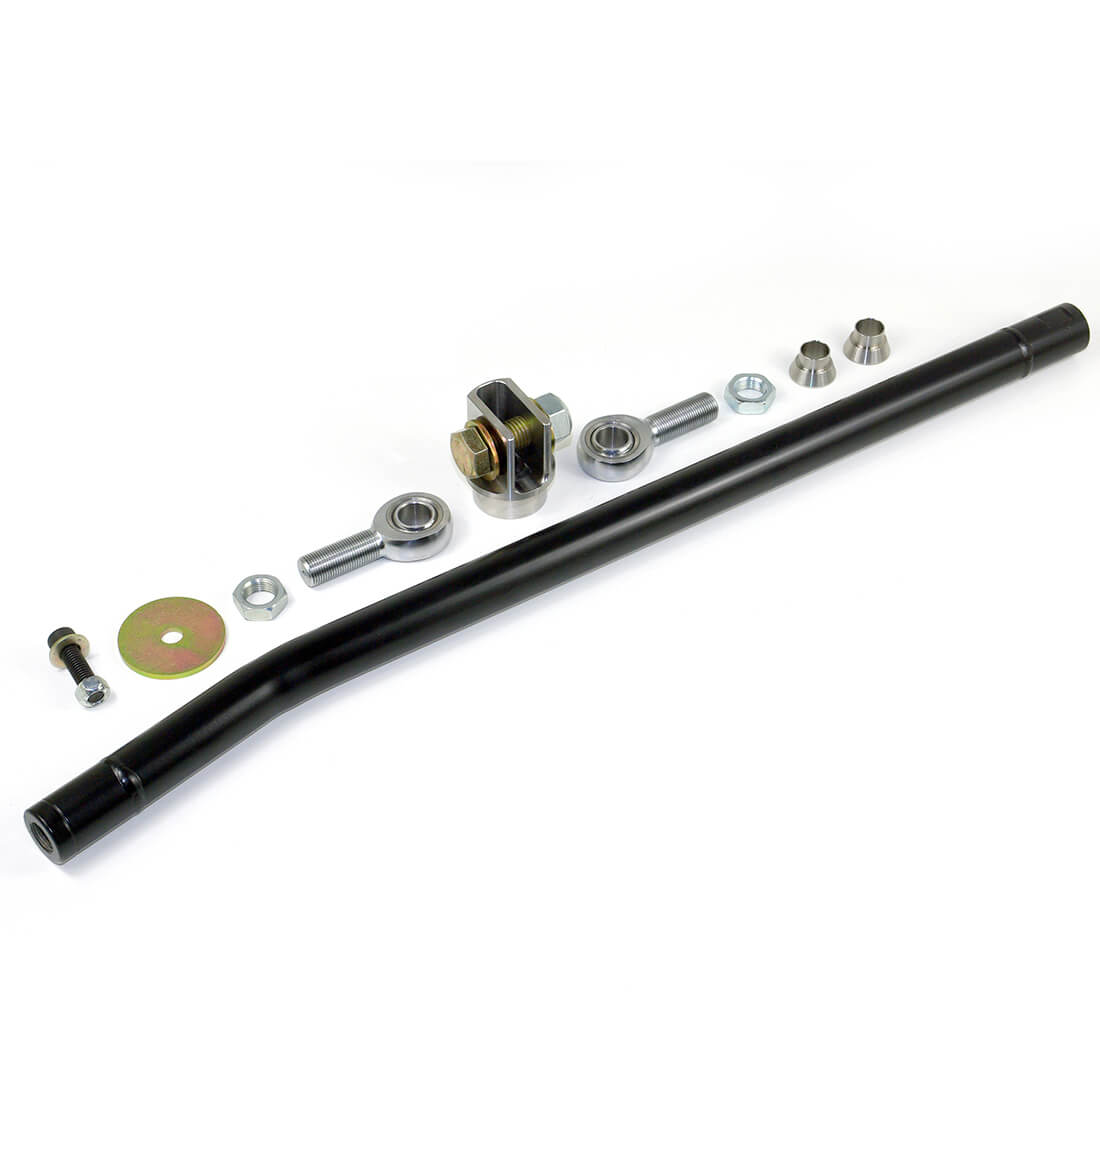 Readylift Suspension 77 1509 Dodge Ram 2009 2013 W O: Shop Accessories